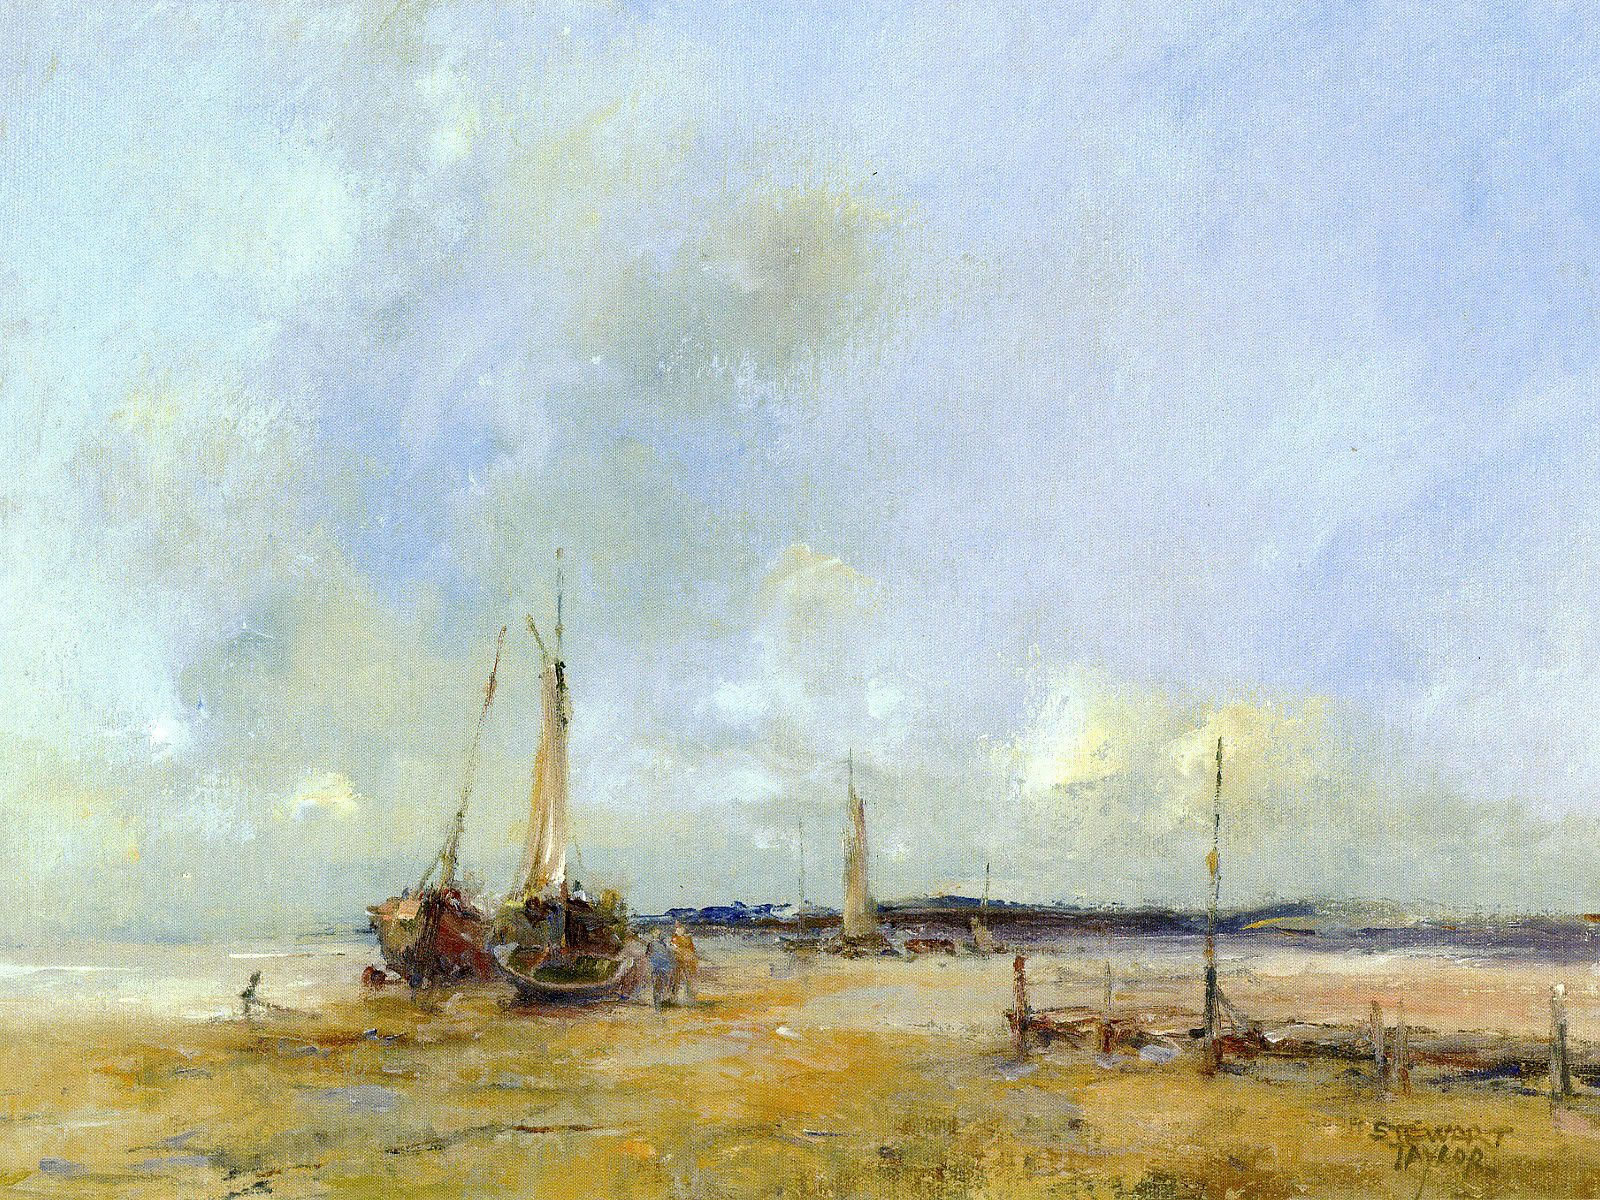 Oil painting of small boats moored on the beach